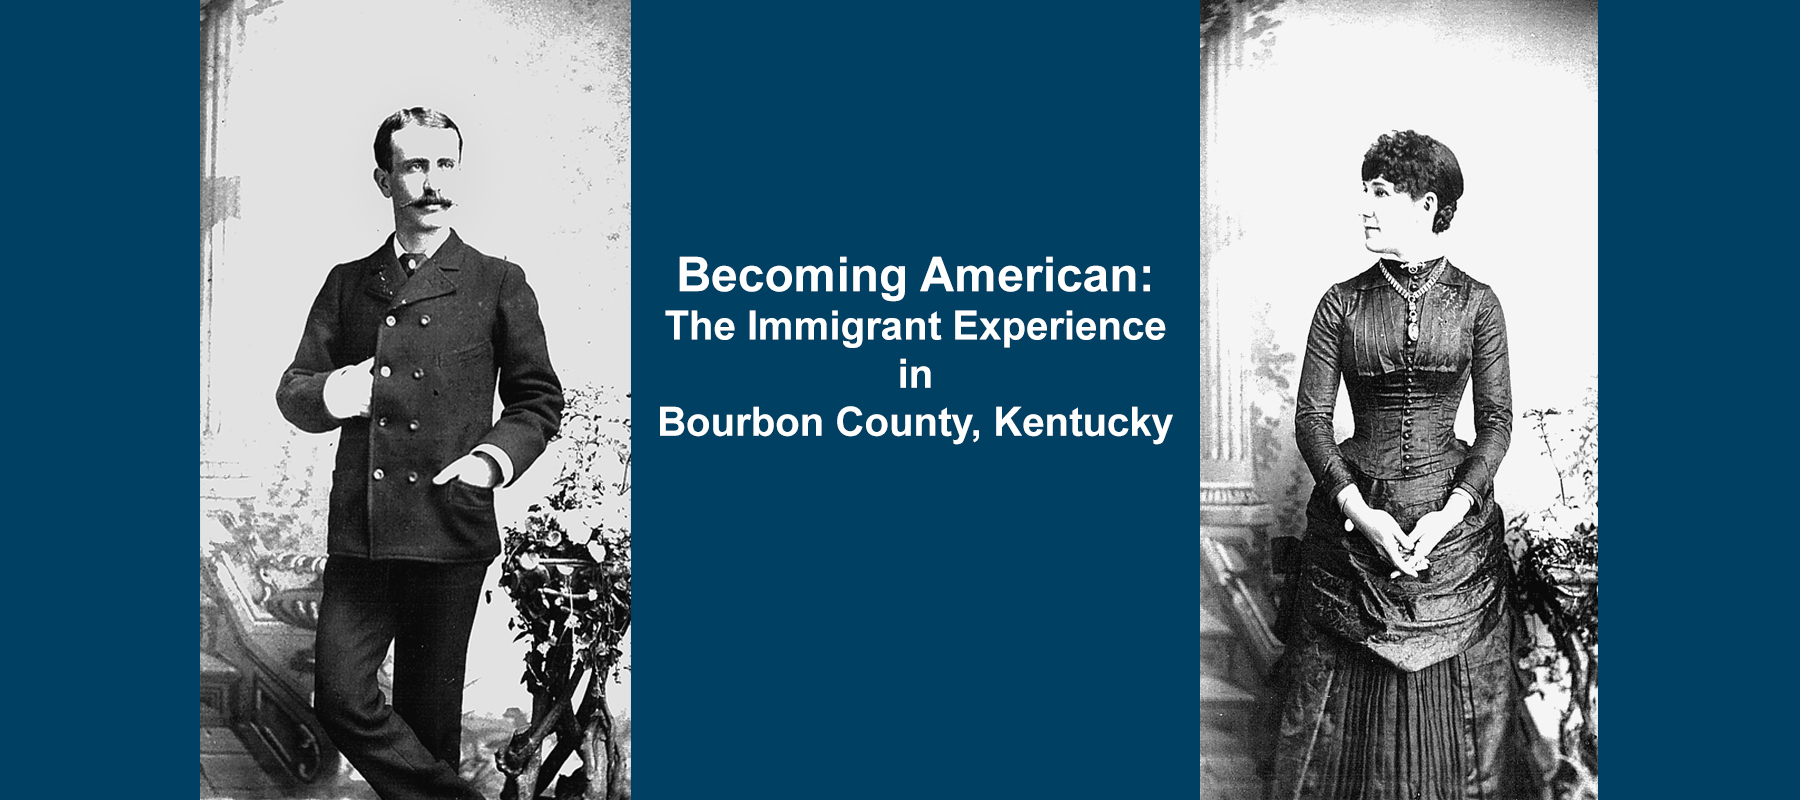 Becoming American: The Immigrant Experience in Bourbon County, Kentucky